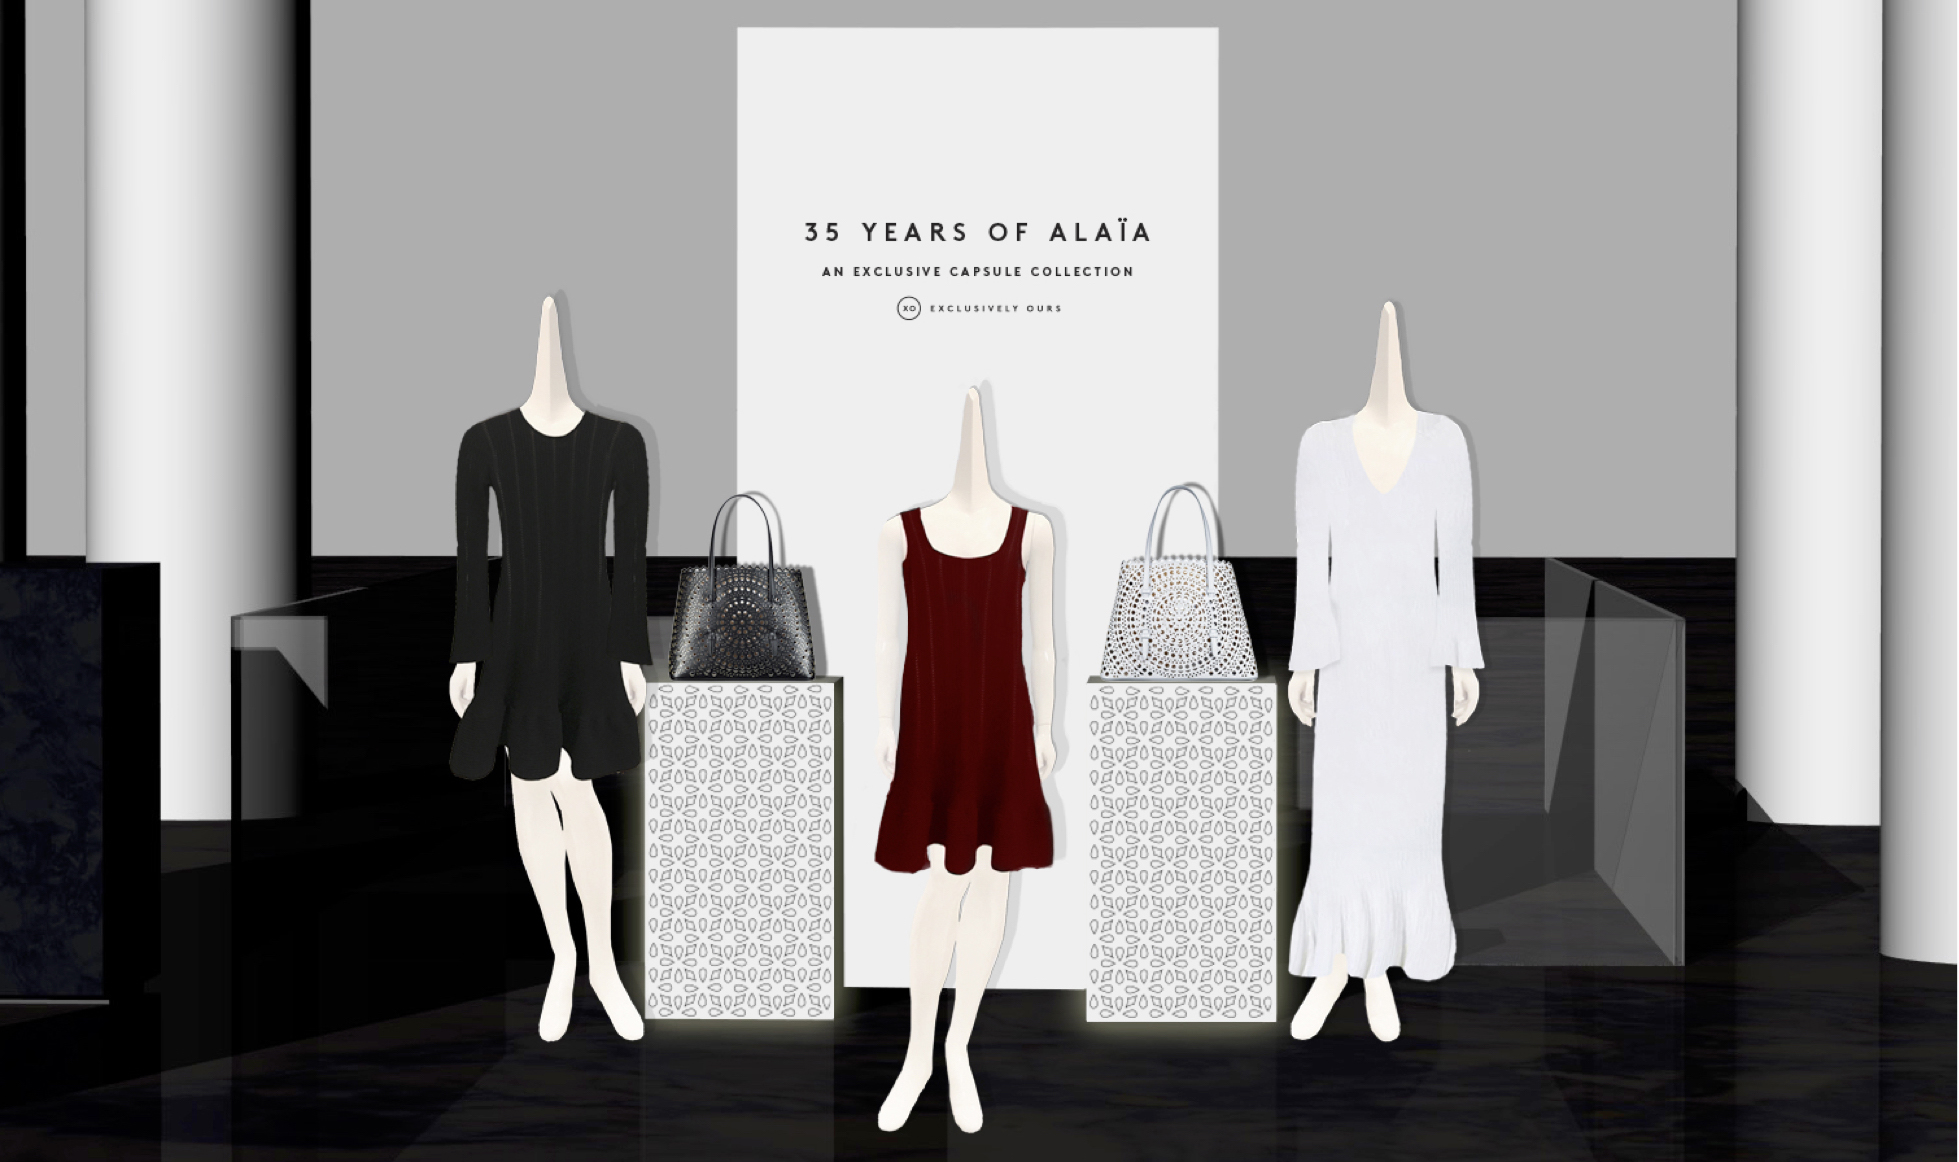 A rendering of an in-store installation at Barneys New York featuring the work of Azzedine Alaia. The dresses are exclusive to the store, part of aspecial collection celebrating the designer's 35-year relationship with Barneys.